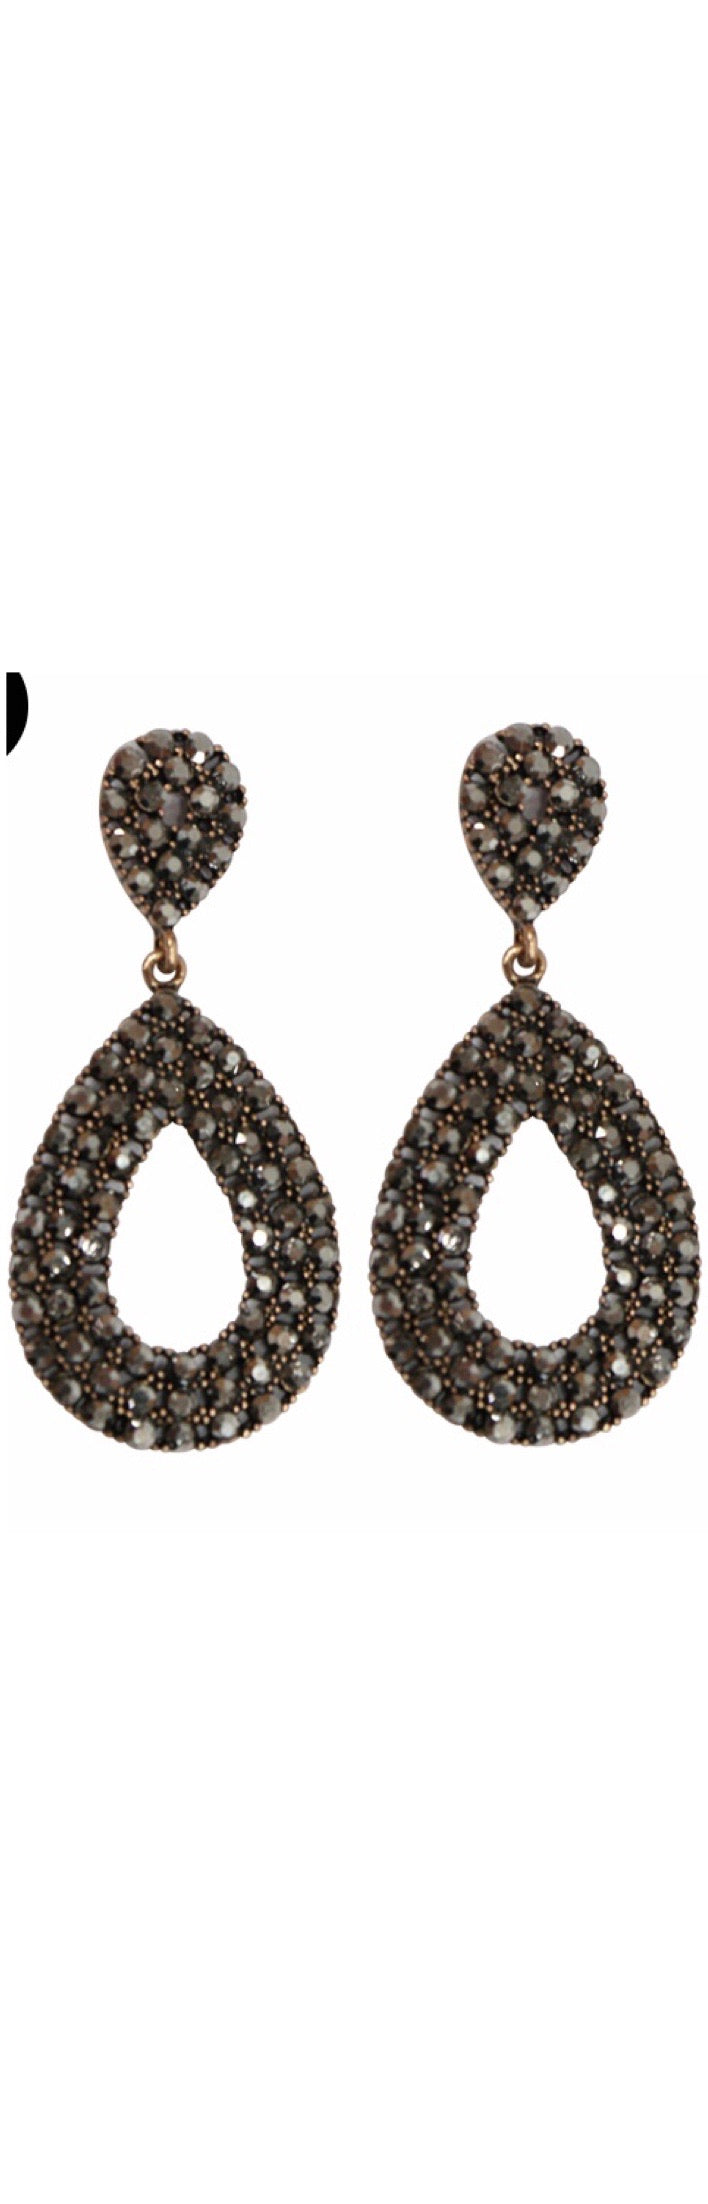 Lillian Earrings Teardrop